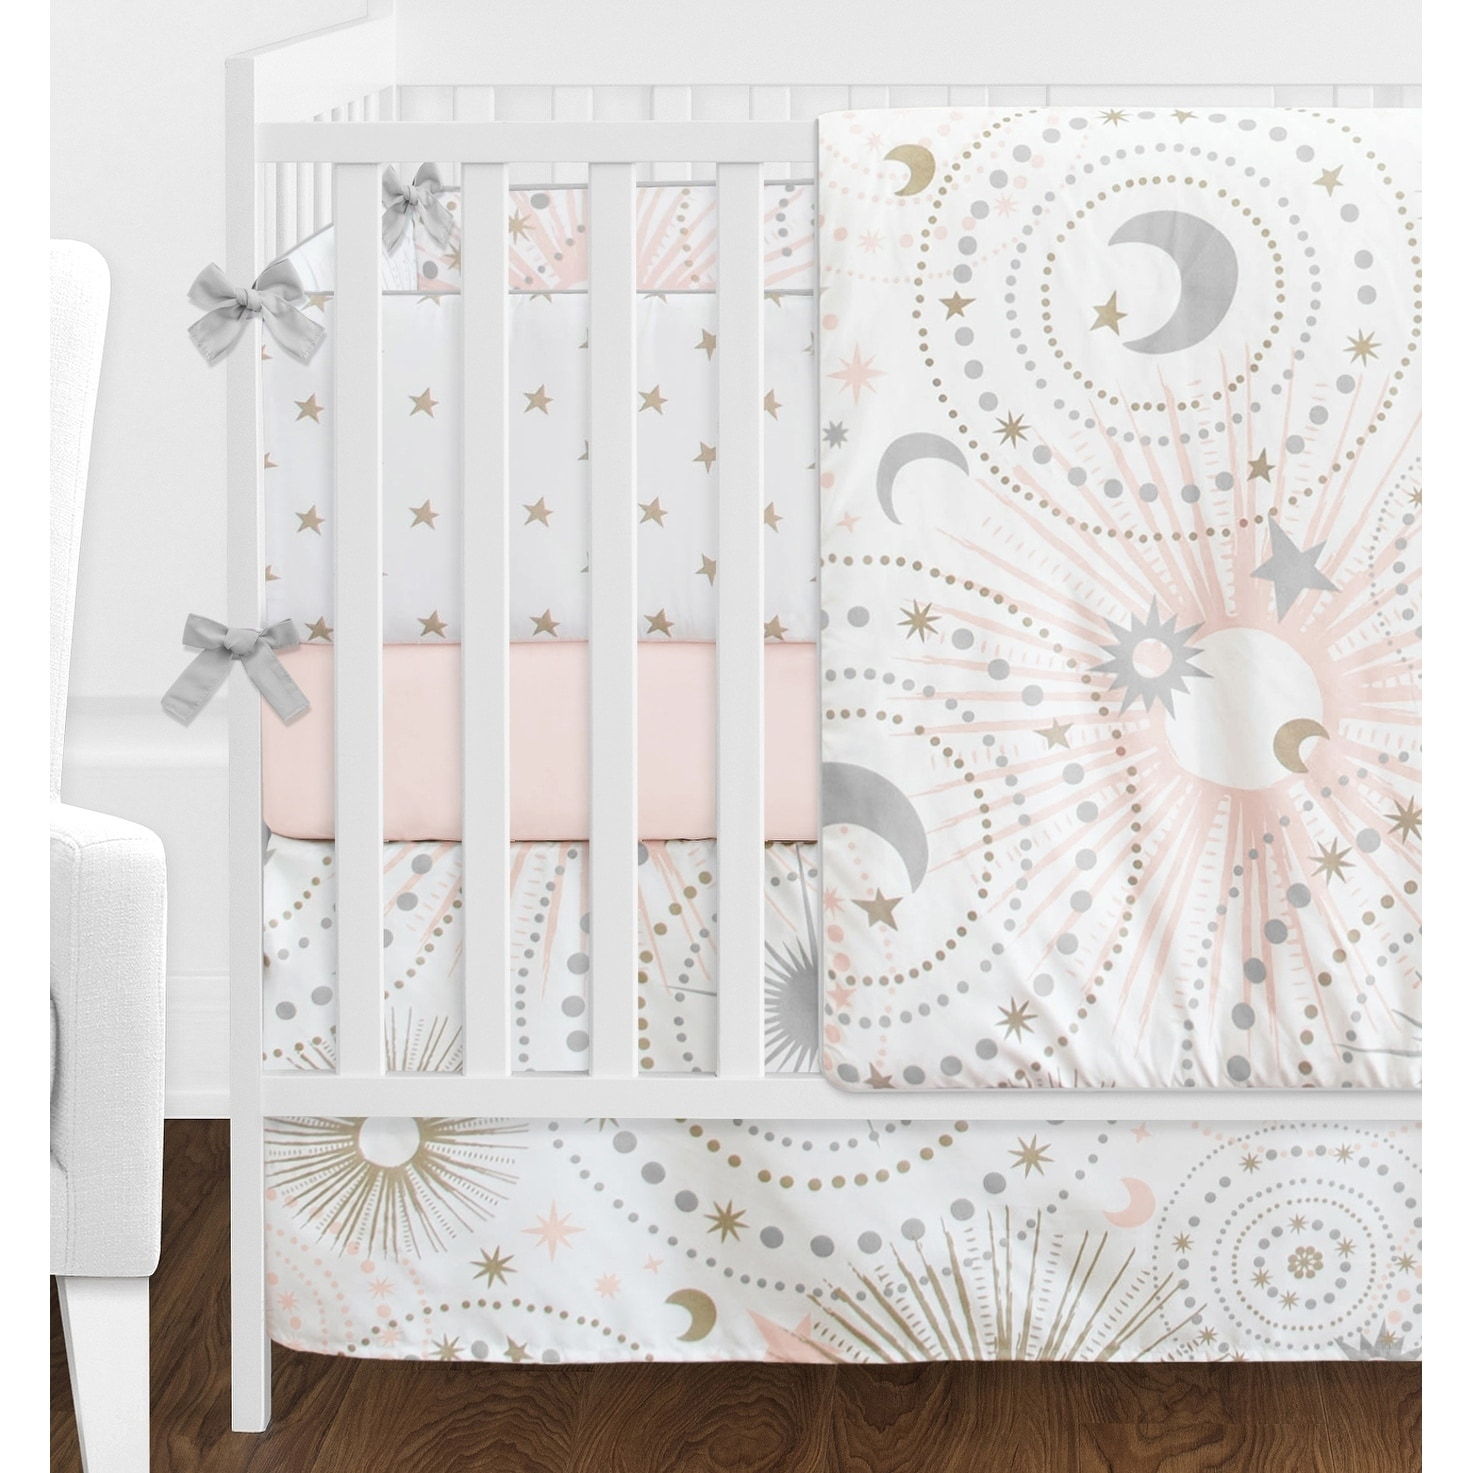 Sweet Jojo Designs Blush Pink Gold Grey And White Star Moon Celestial Collection Baby 9 Piece Crib Bedding Set Free Shipping Today